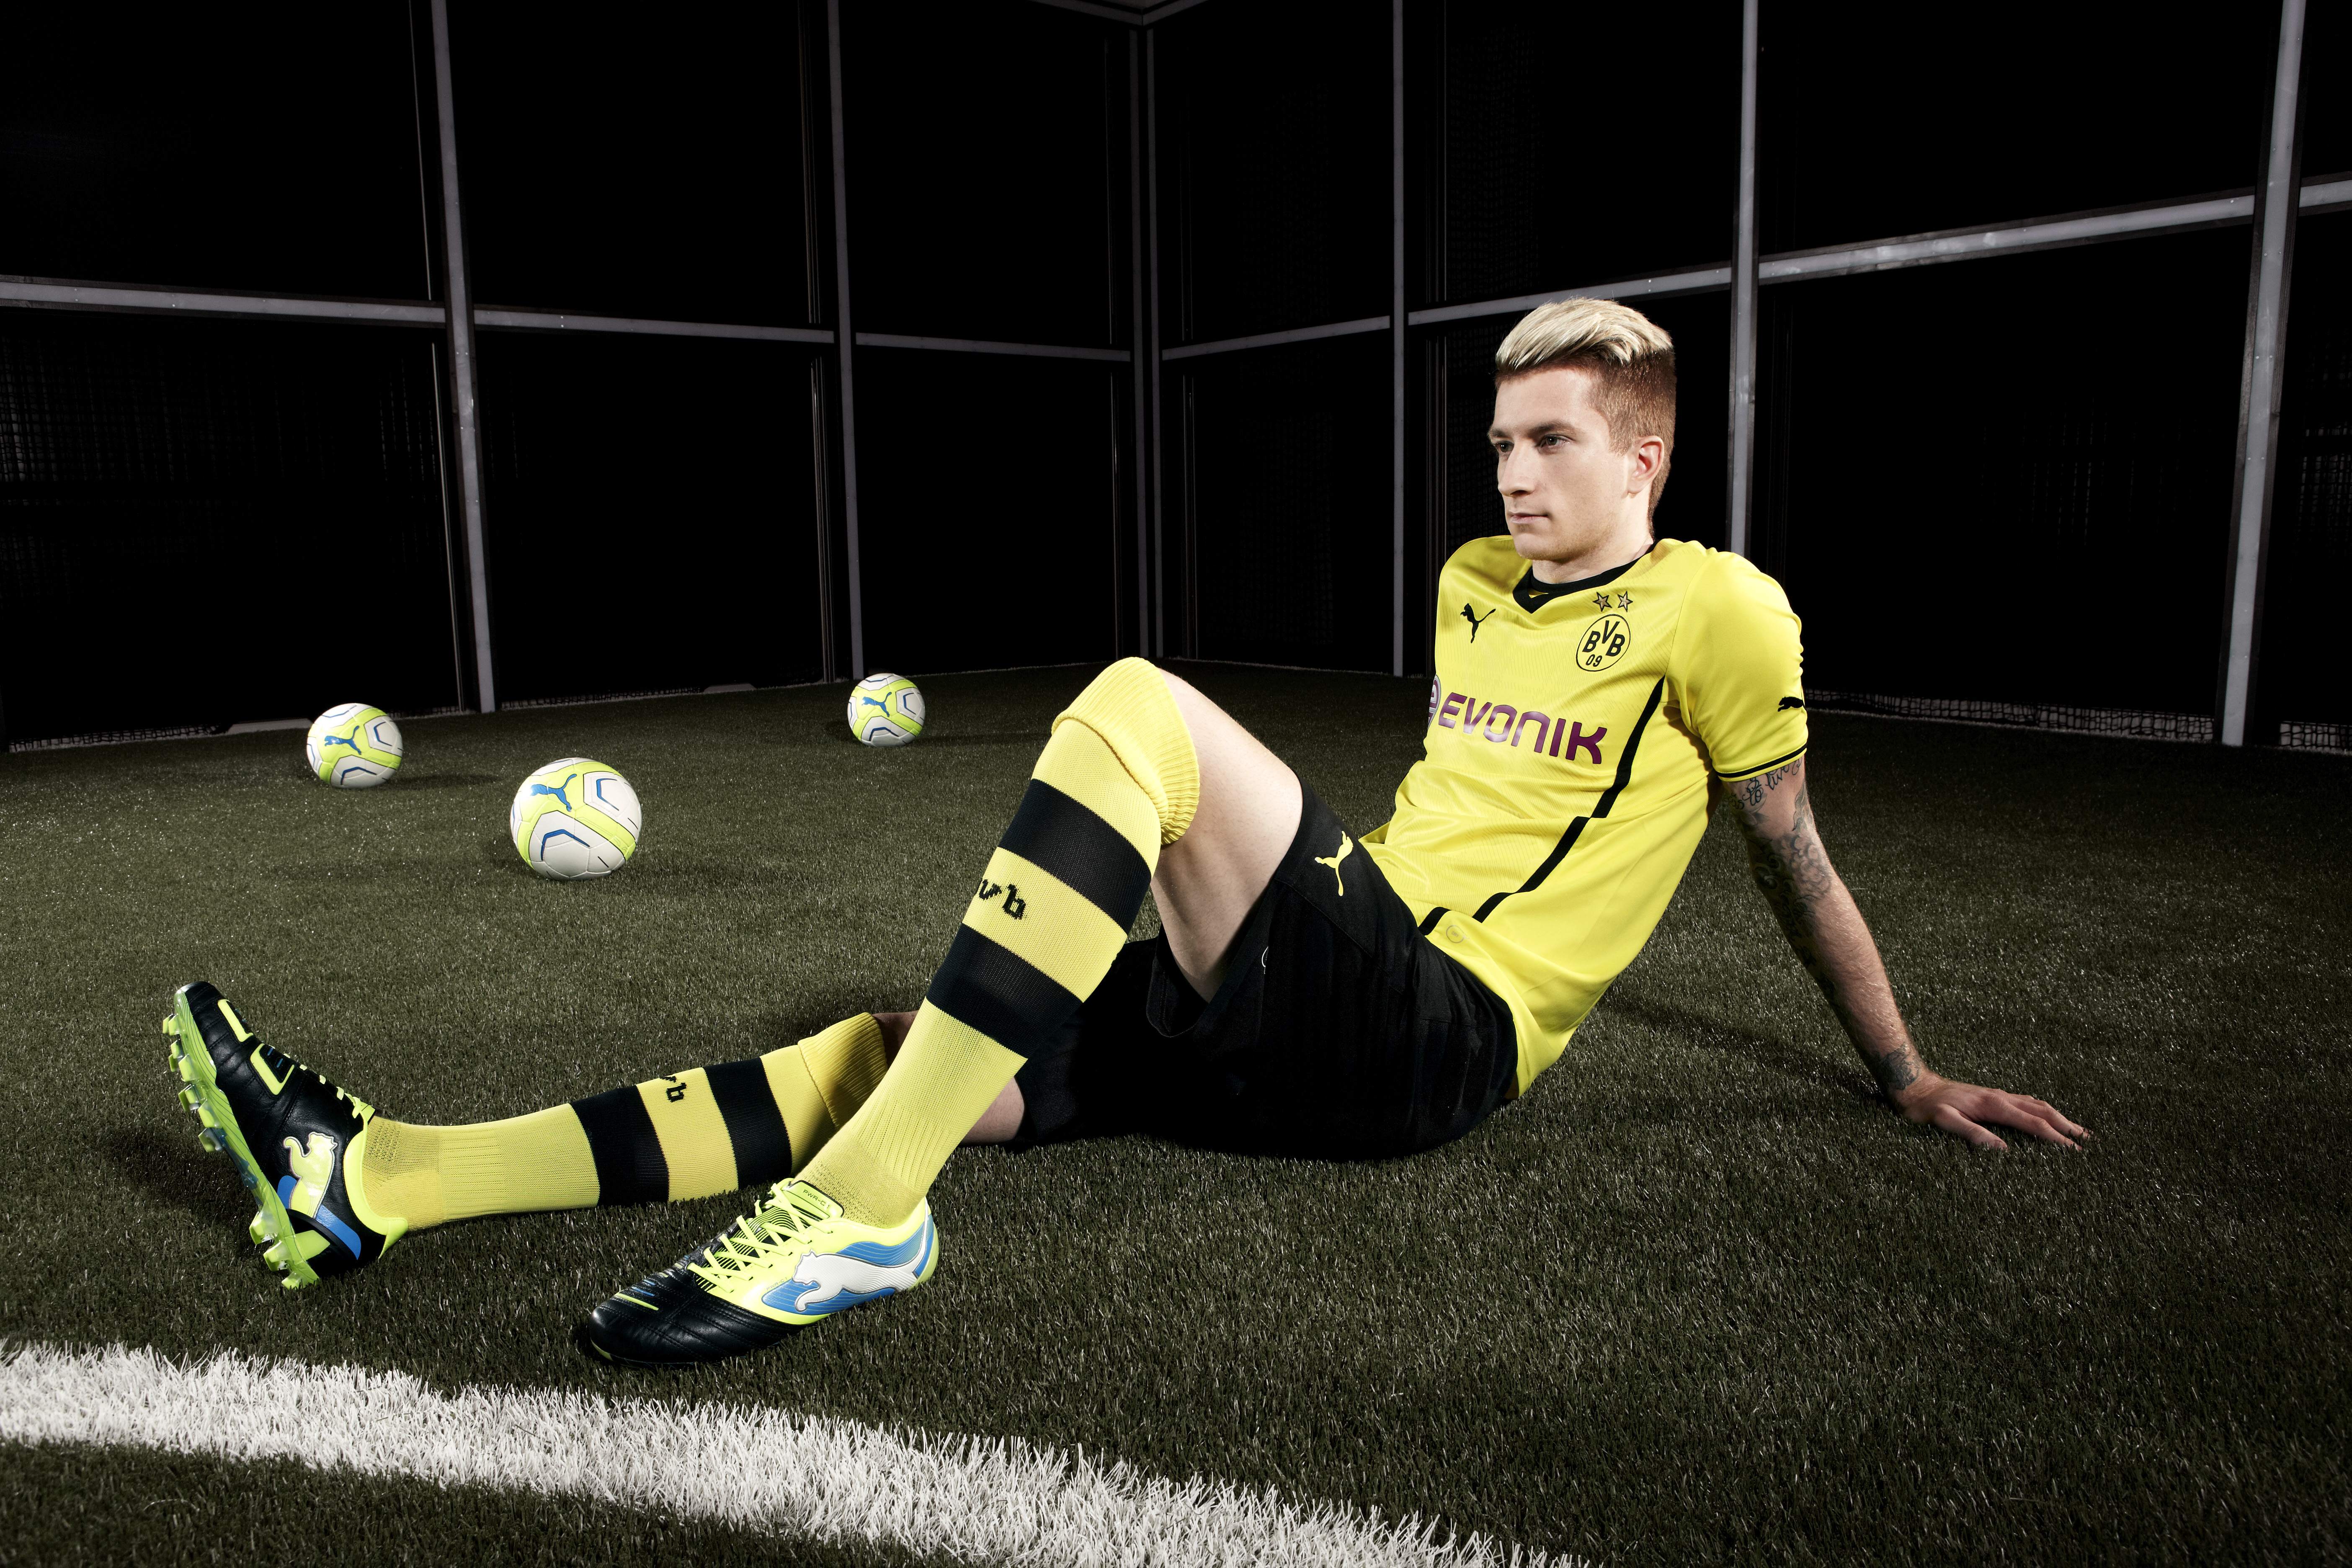 exclusive range shades of footwear Football kit release: PUMA unveils new Borussia Dortmund ...